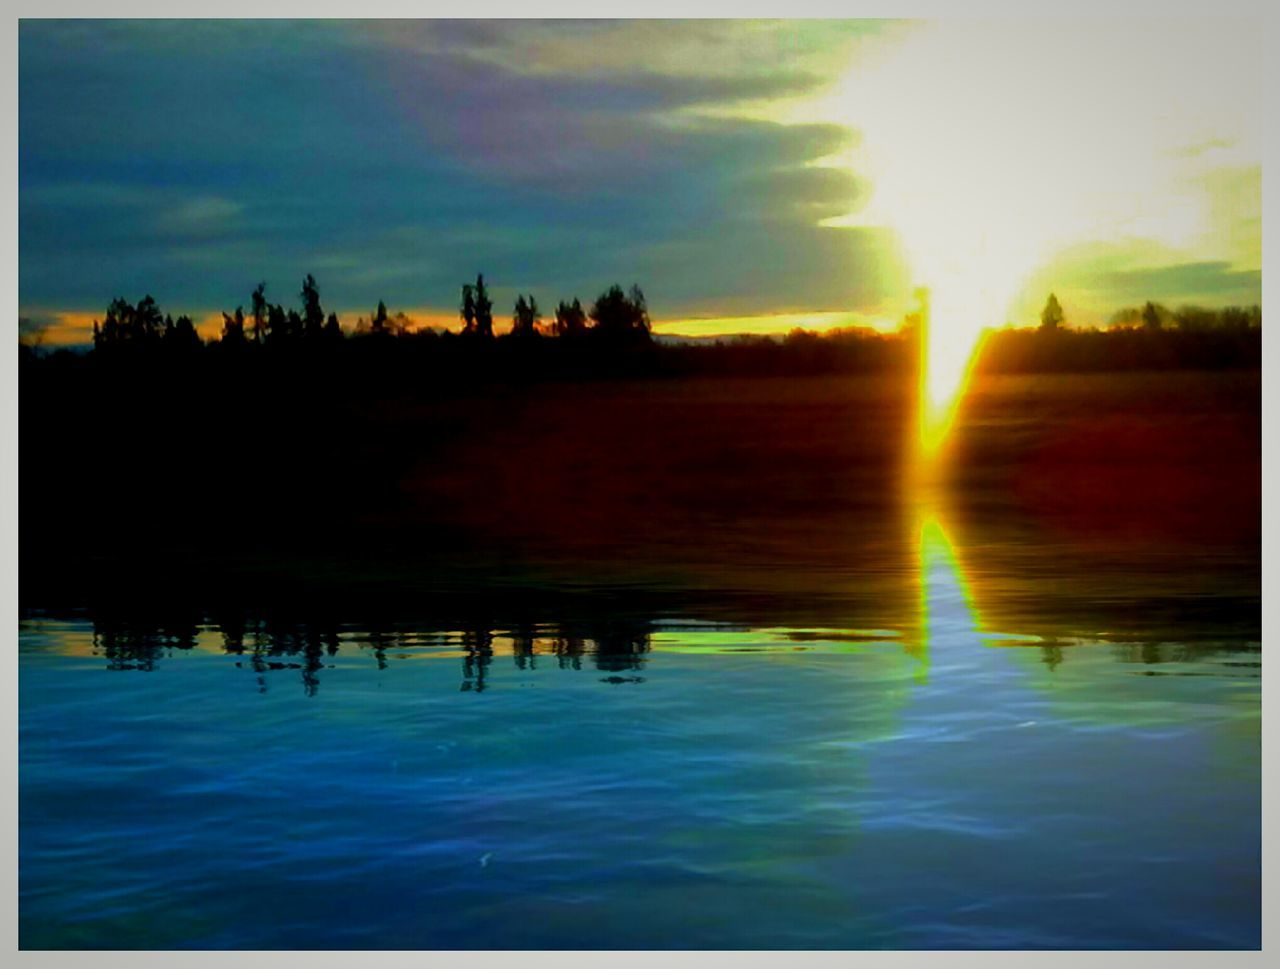 reflection, sunset, water, sky, nature, silhouette, beauty in nature, tranquil scene, tranquility, lake, outdoors, scenics, no people, cloud - sky, day, tree